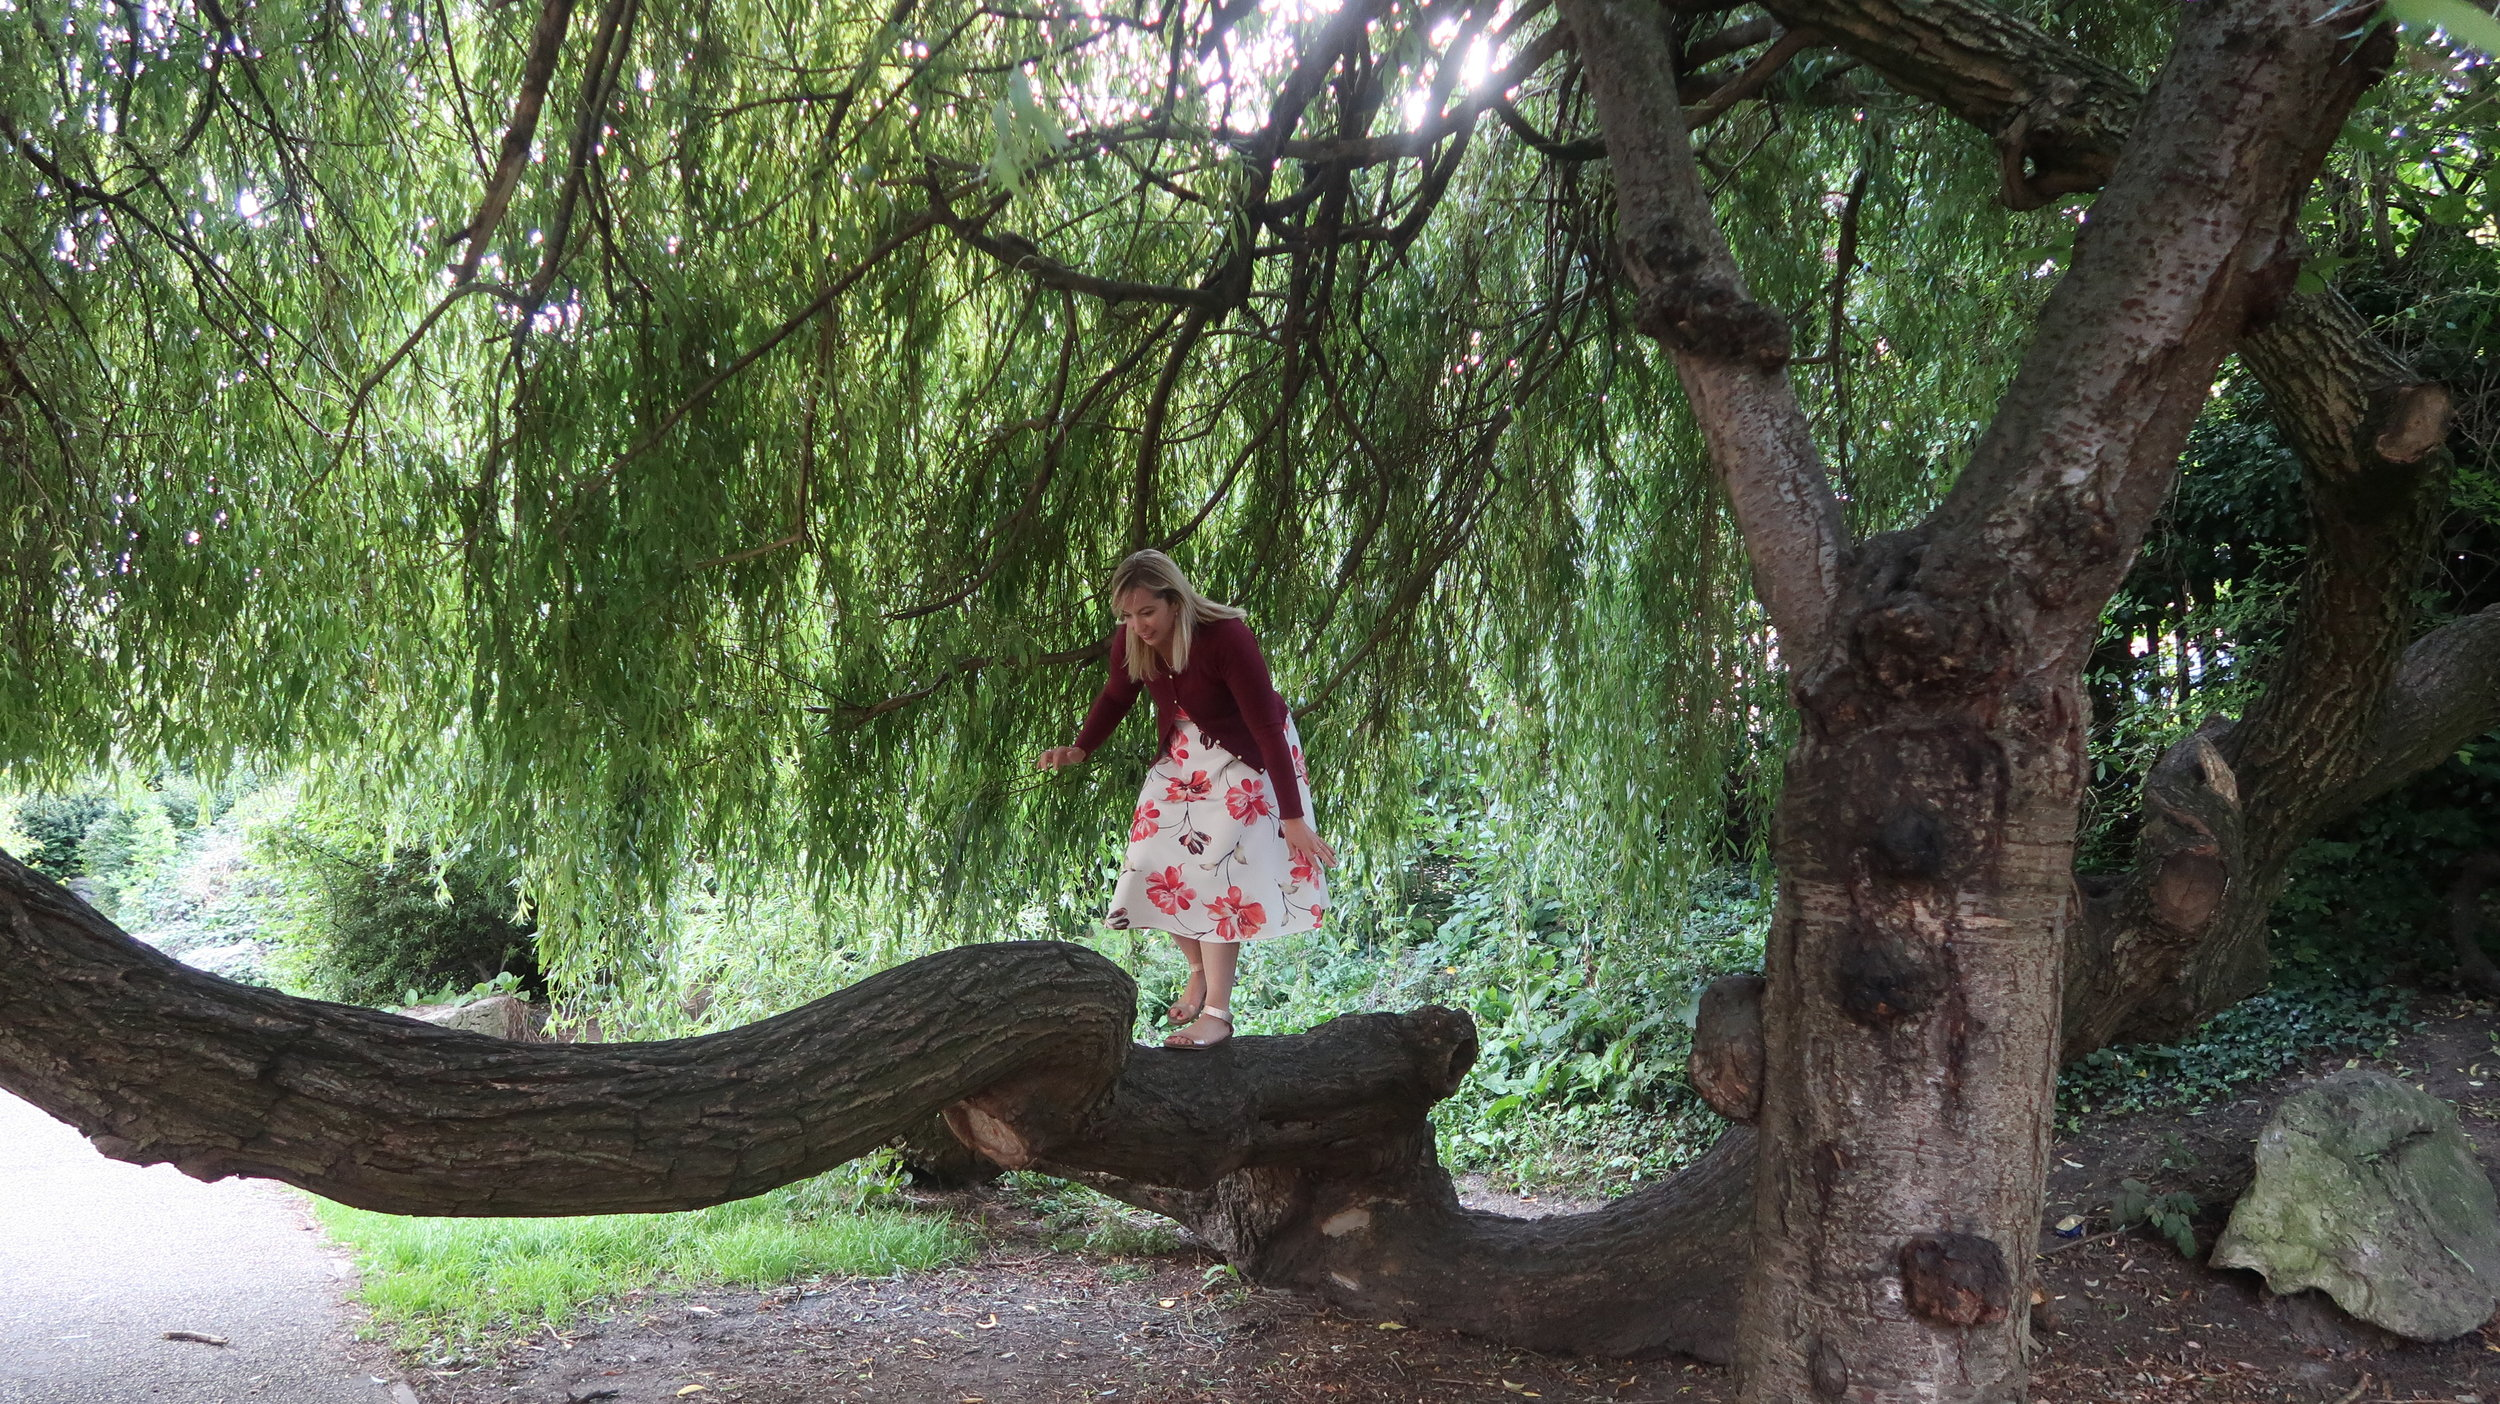 Who would've thought climbing trees would bring me so much joy?!